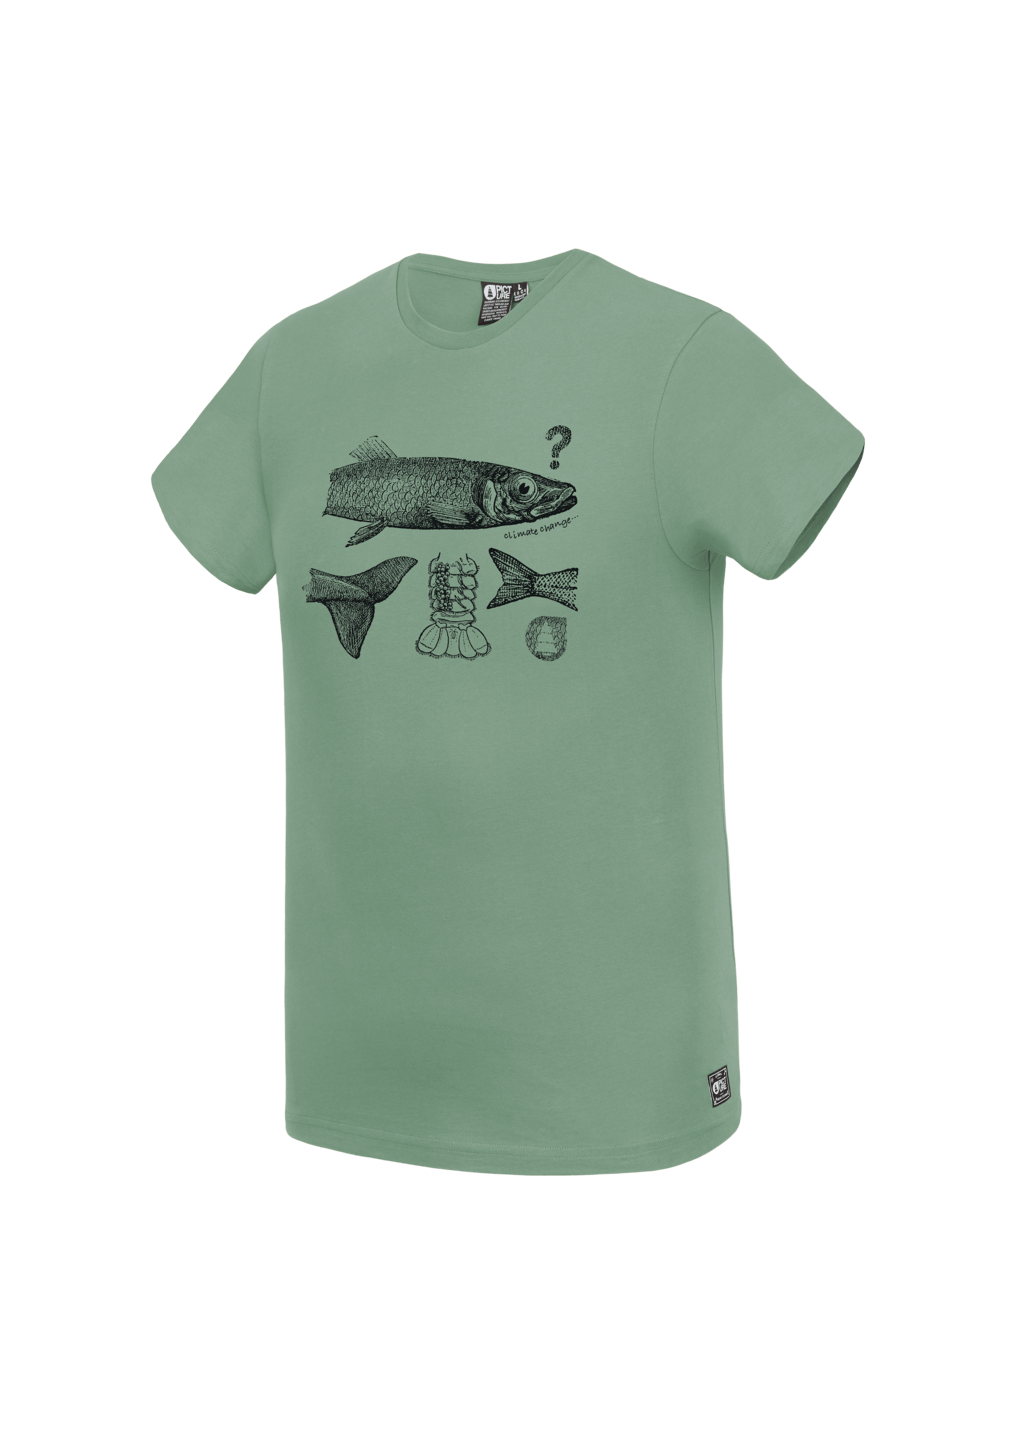 Tee Shirt Picture Jack Army Green